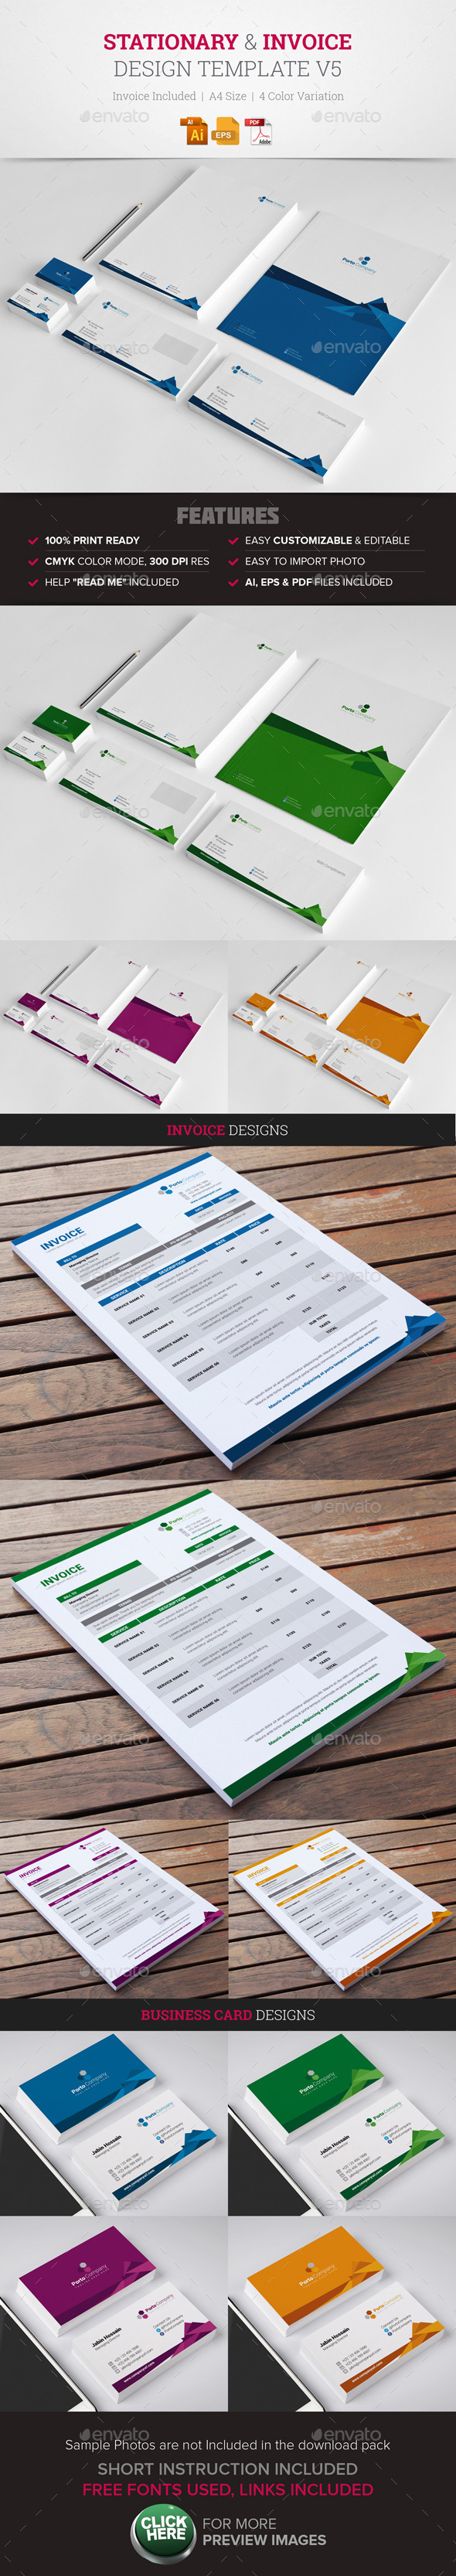 Stationary & Invoice Design Template v5 - Stationery Print Templates